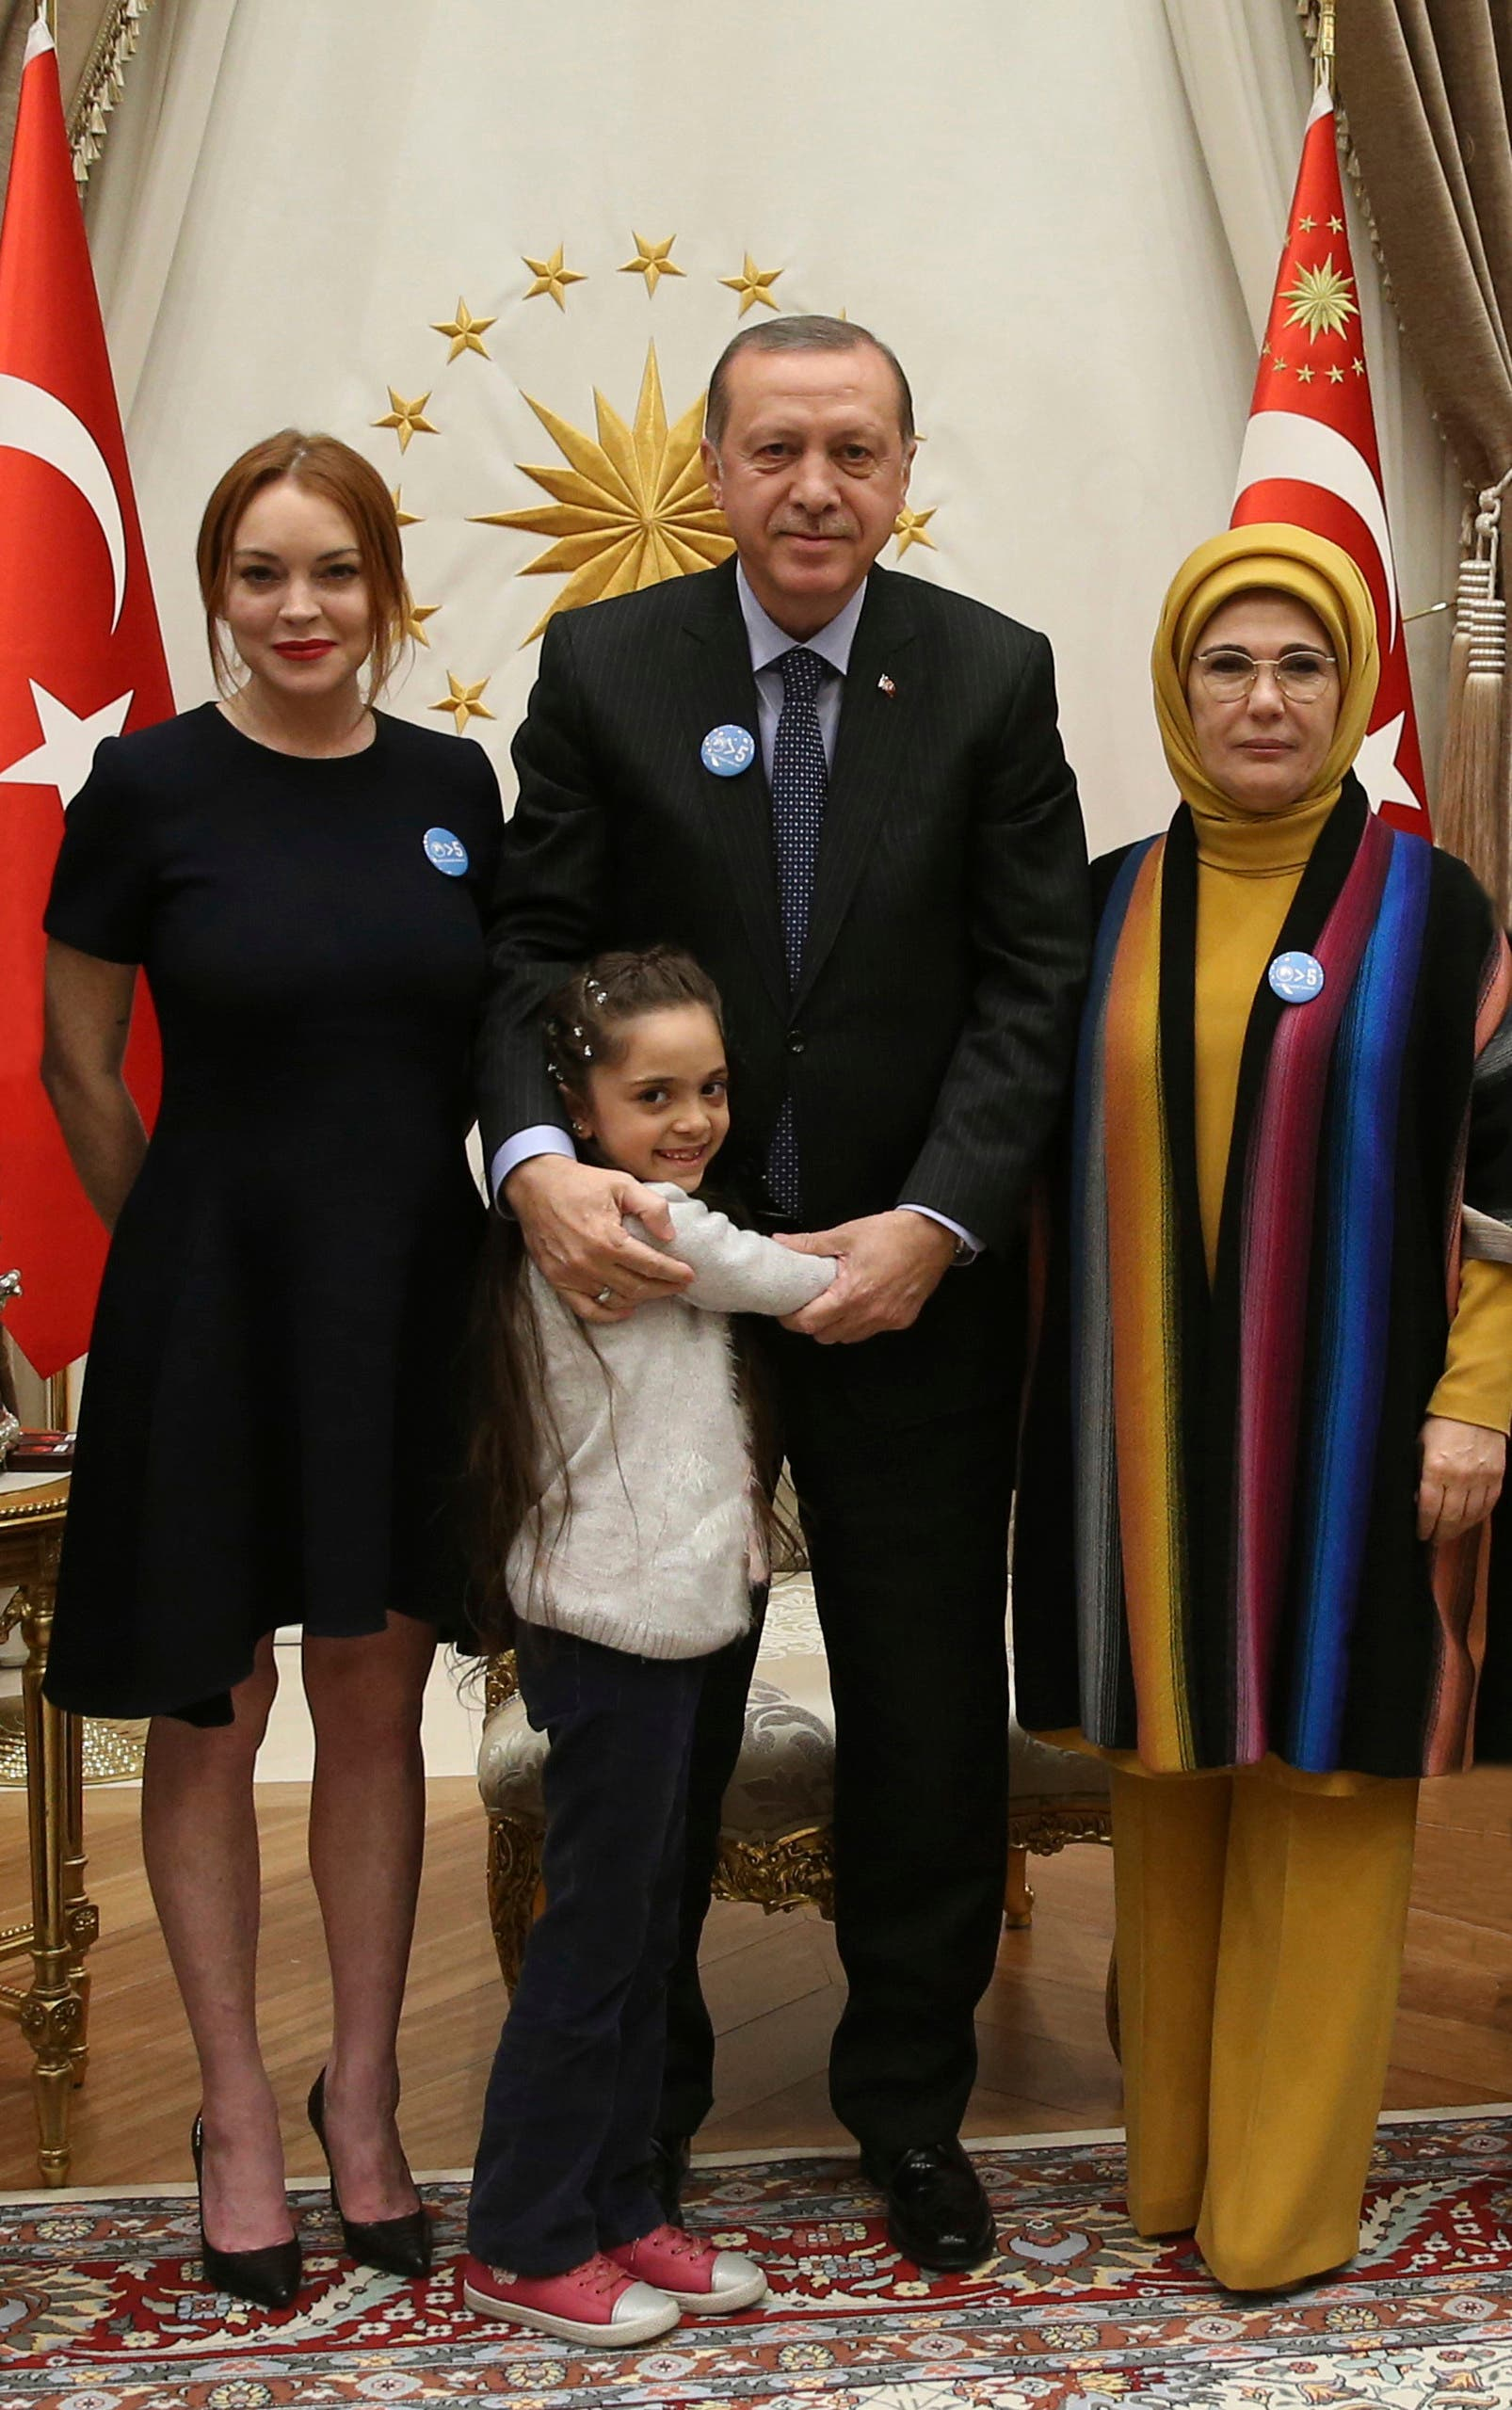 U.S. actress Lindsay Lohan, left, poses for photographs with Turkey's President Recep Tayyip Erdogan, center, his wife Emine, right, and Bana Al-Abed, a Syrian refuge child, at the Presidential Palace in Ankara, Turkey, Friday, Jan. 27, 2017. (AP)